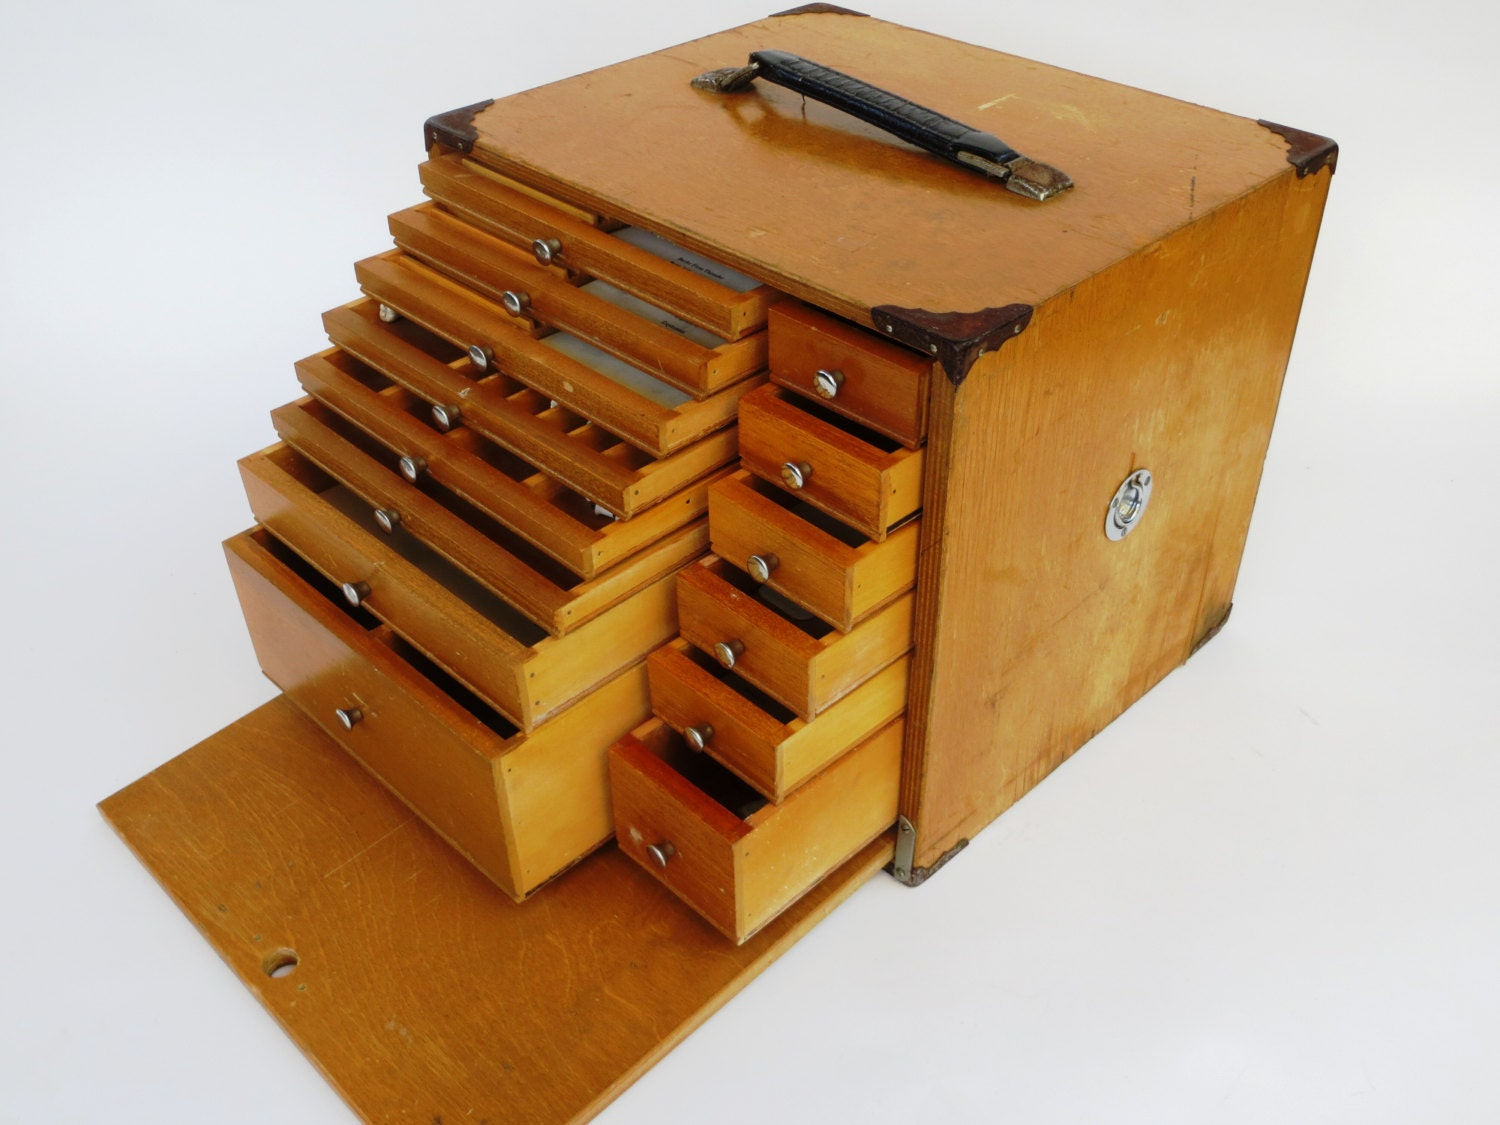 Superb img of Vintage Traveling Dentistry Kit: 14 Drawer Wooden by MerlesVintage with #AE4E02 color and 1500x1125 pixels